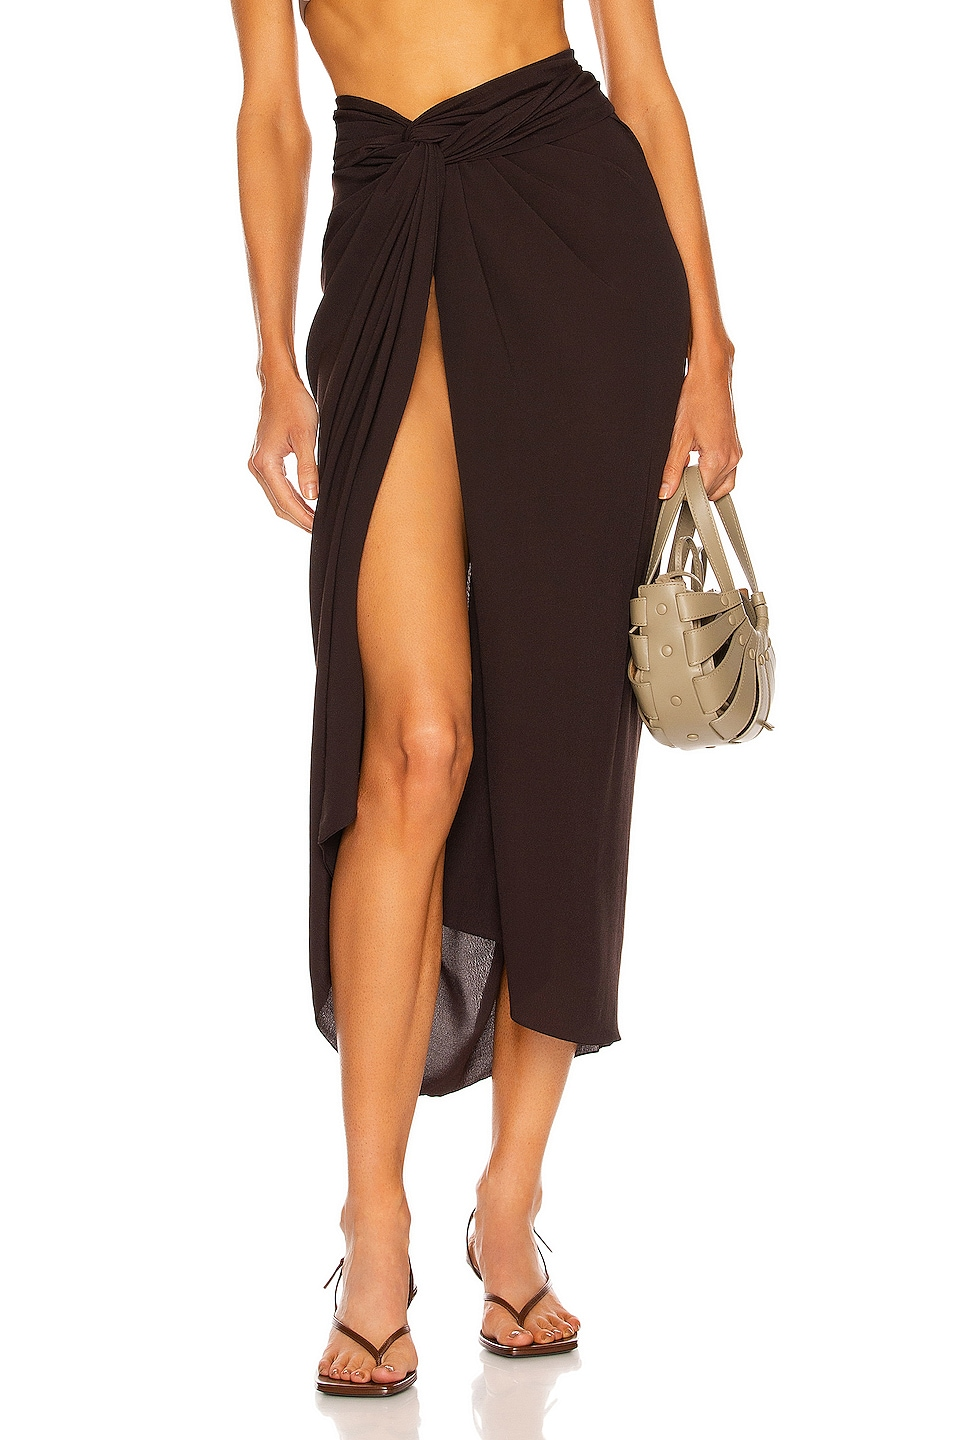 Image 1 of HAIGHT. Panneaux Skirt in Black